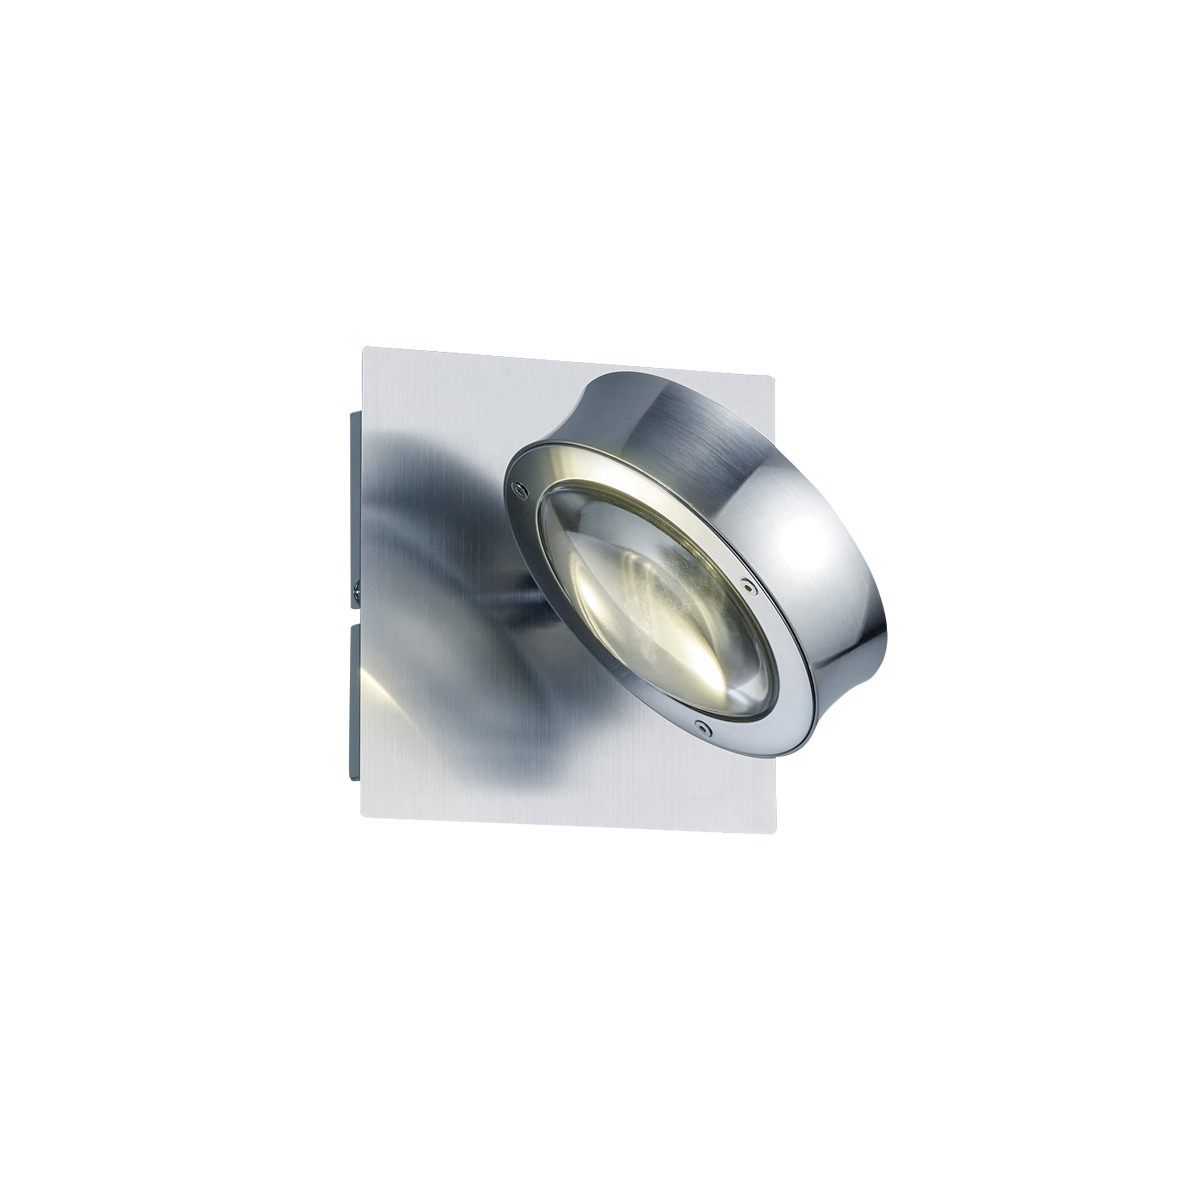 B-Leuchten Easy Light Wandleuchte RGB, Nickel matt / Chrom